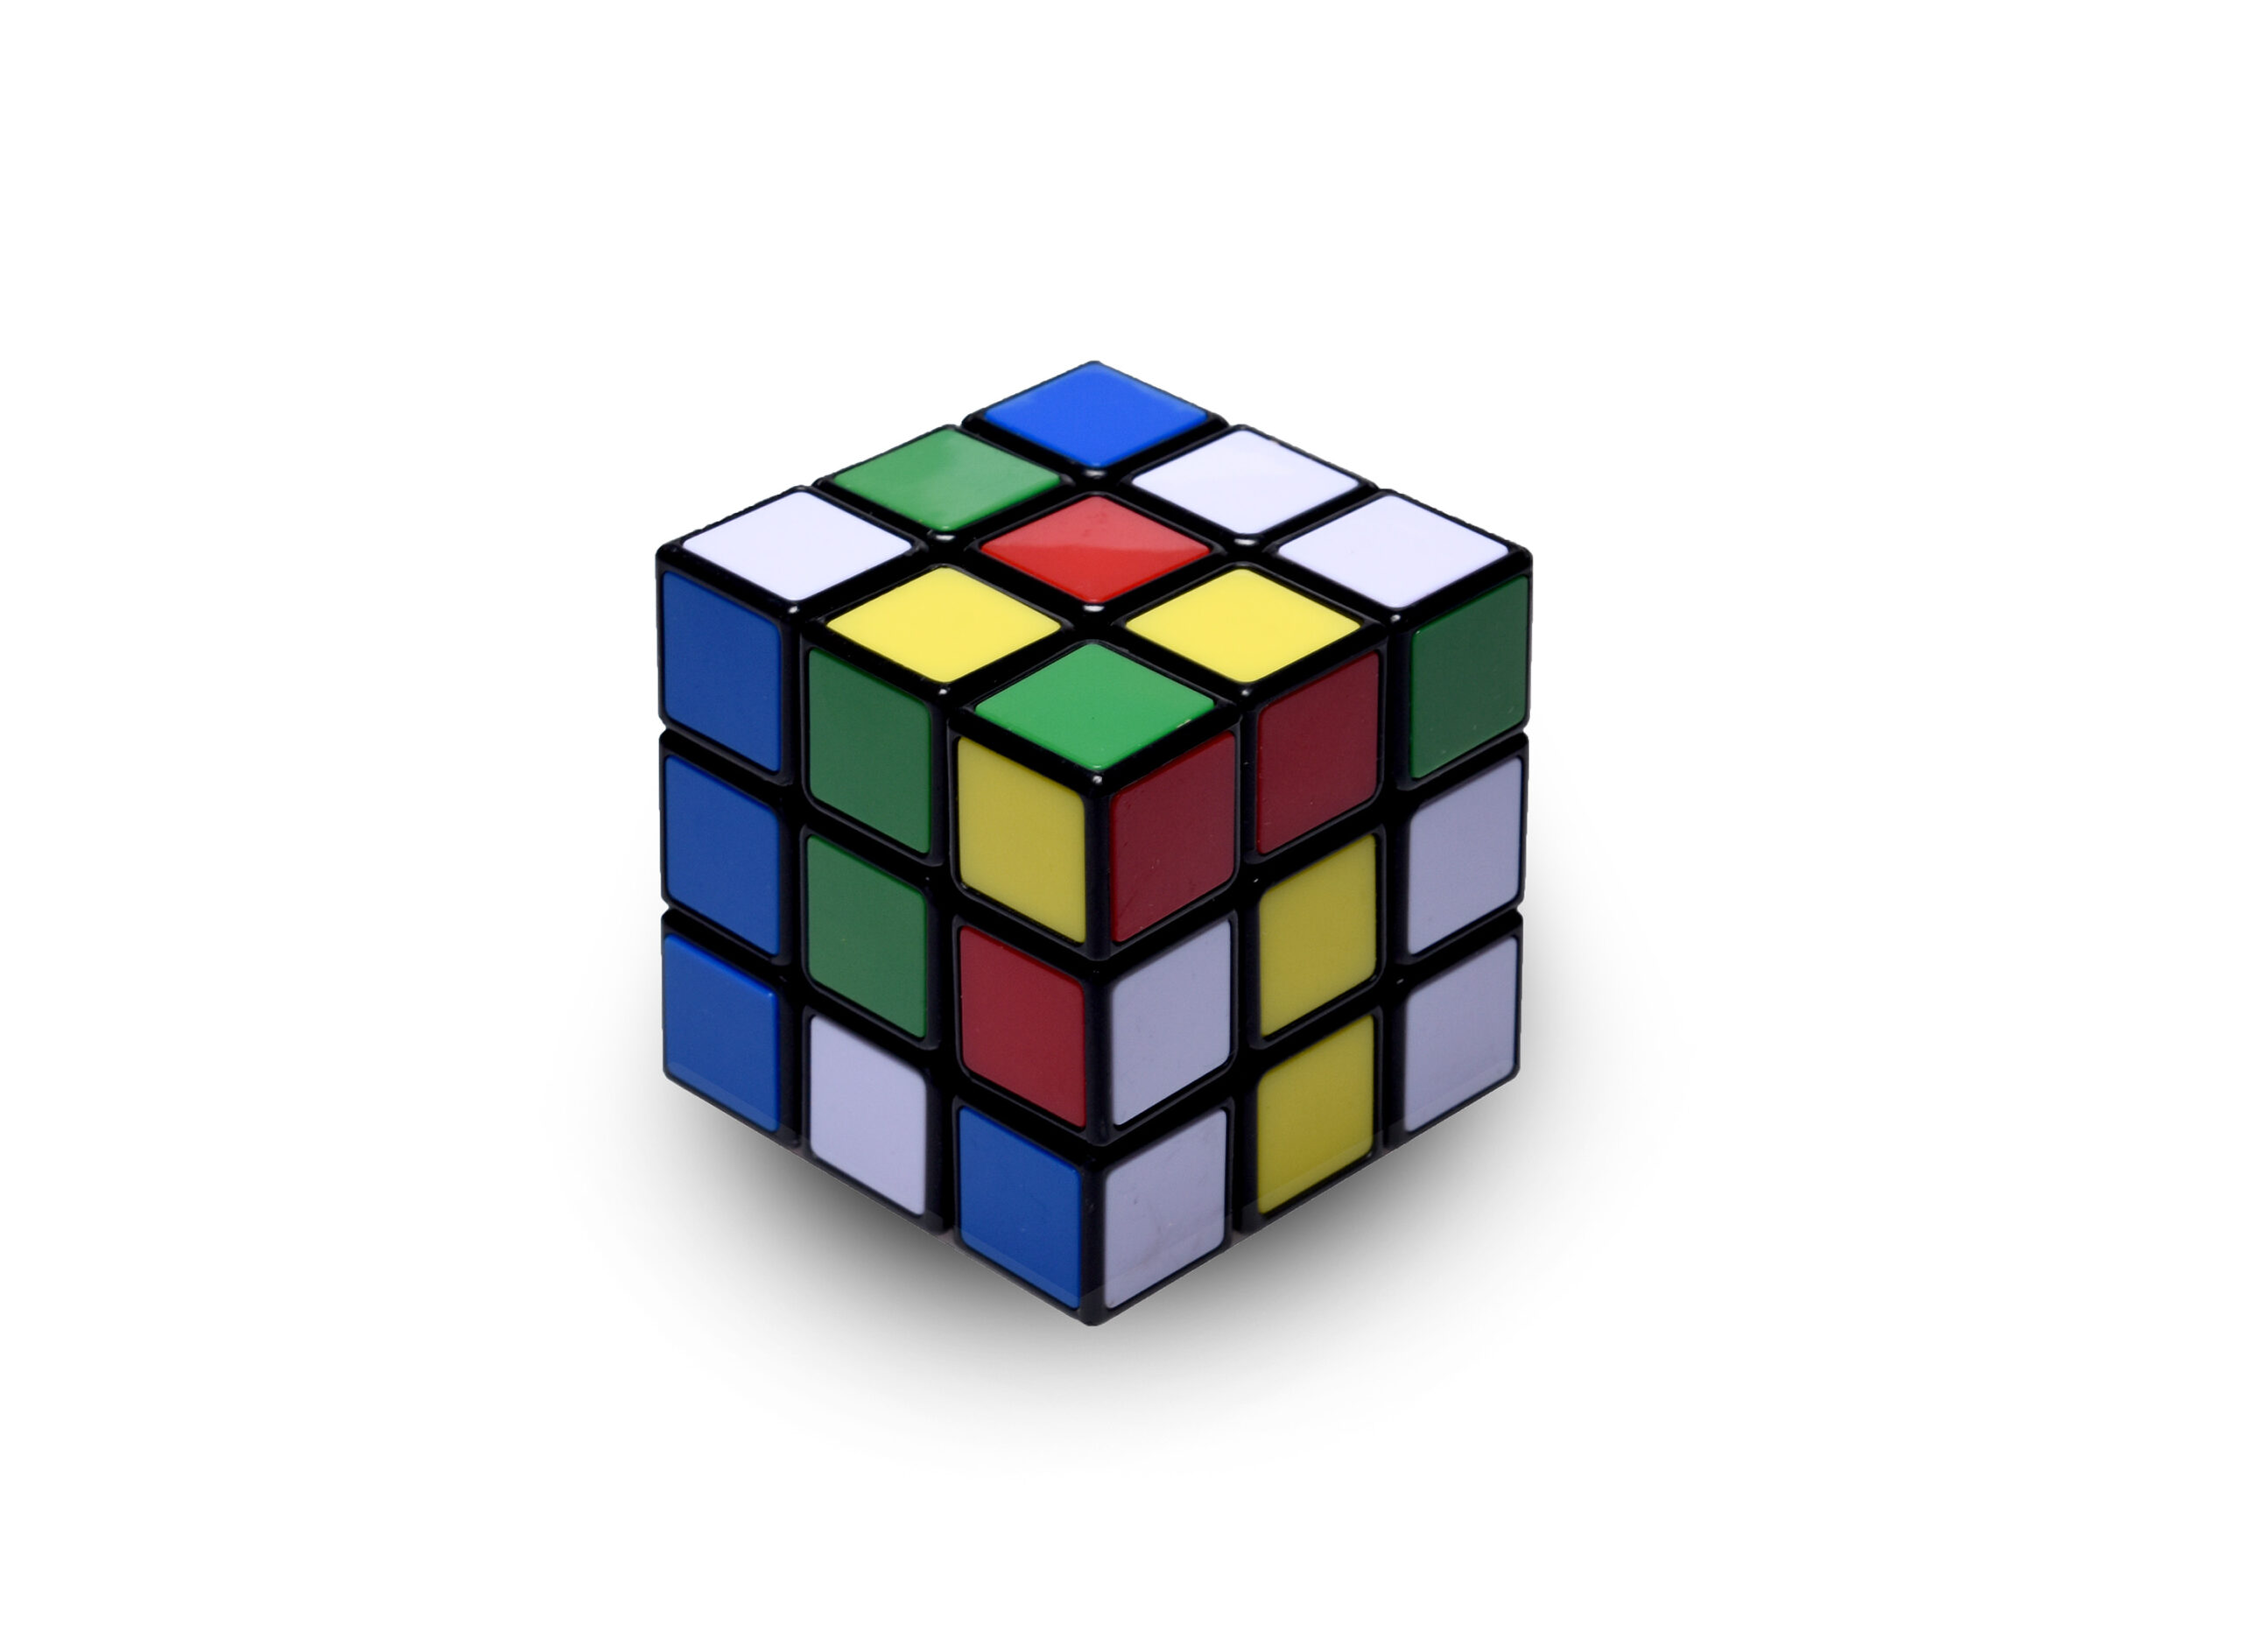 Canadian Toymaker Buys Iconic Rubik's Cube 3D Puzzle